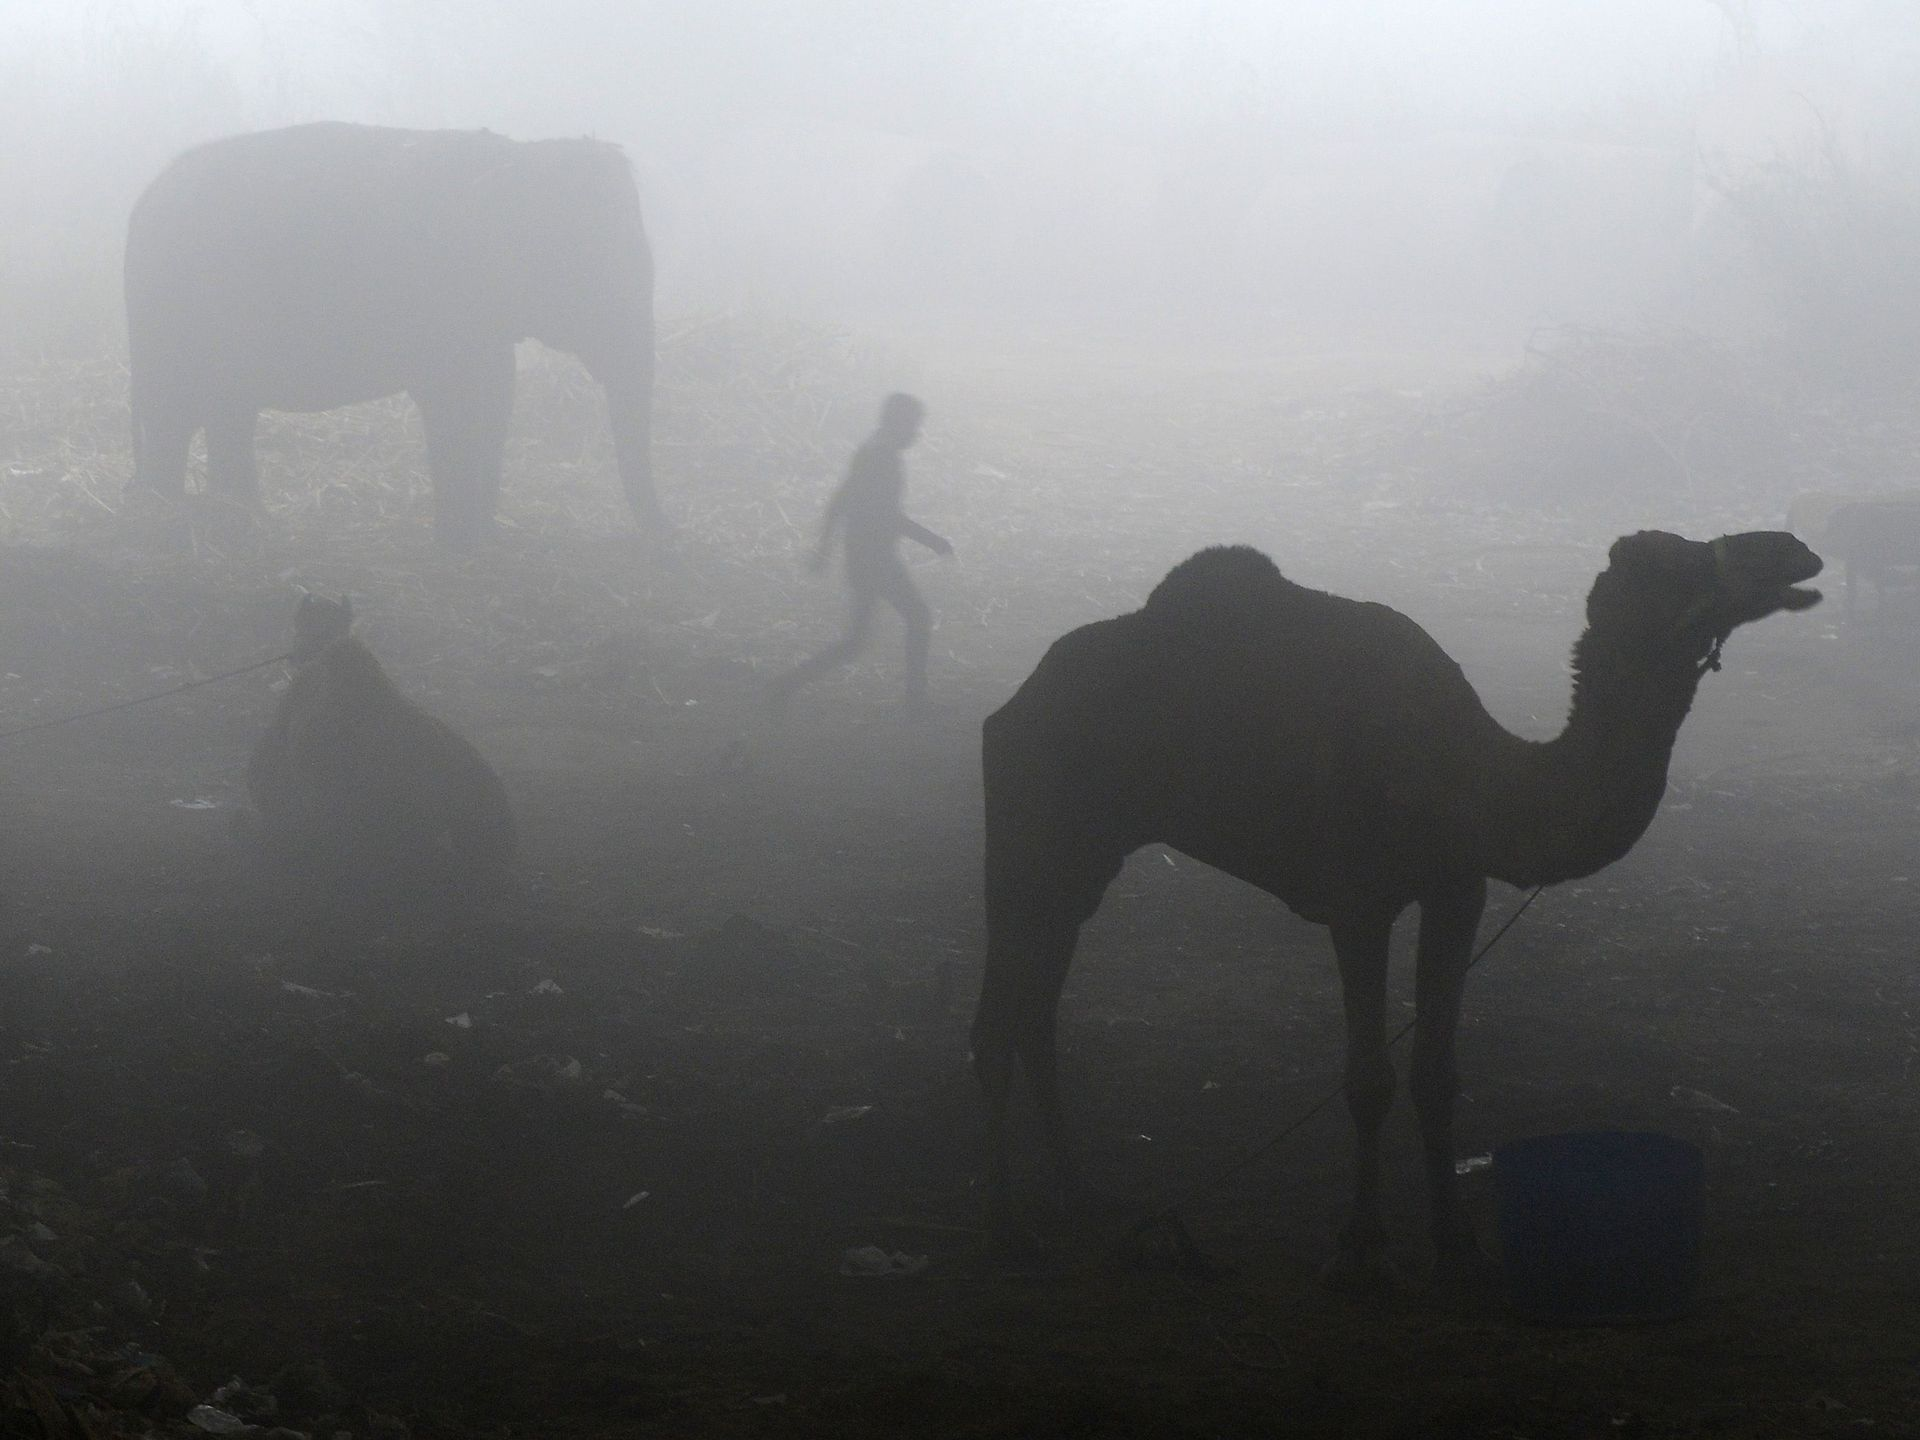 A man walks past a camel and an elephant tethered on